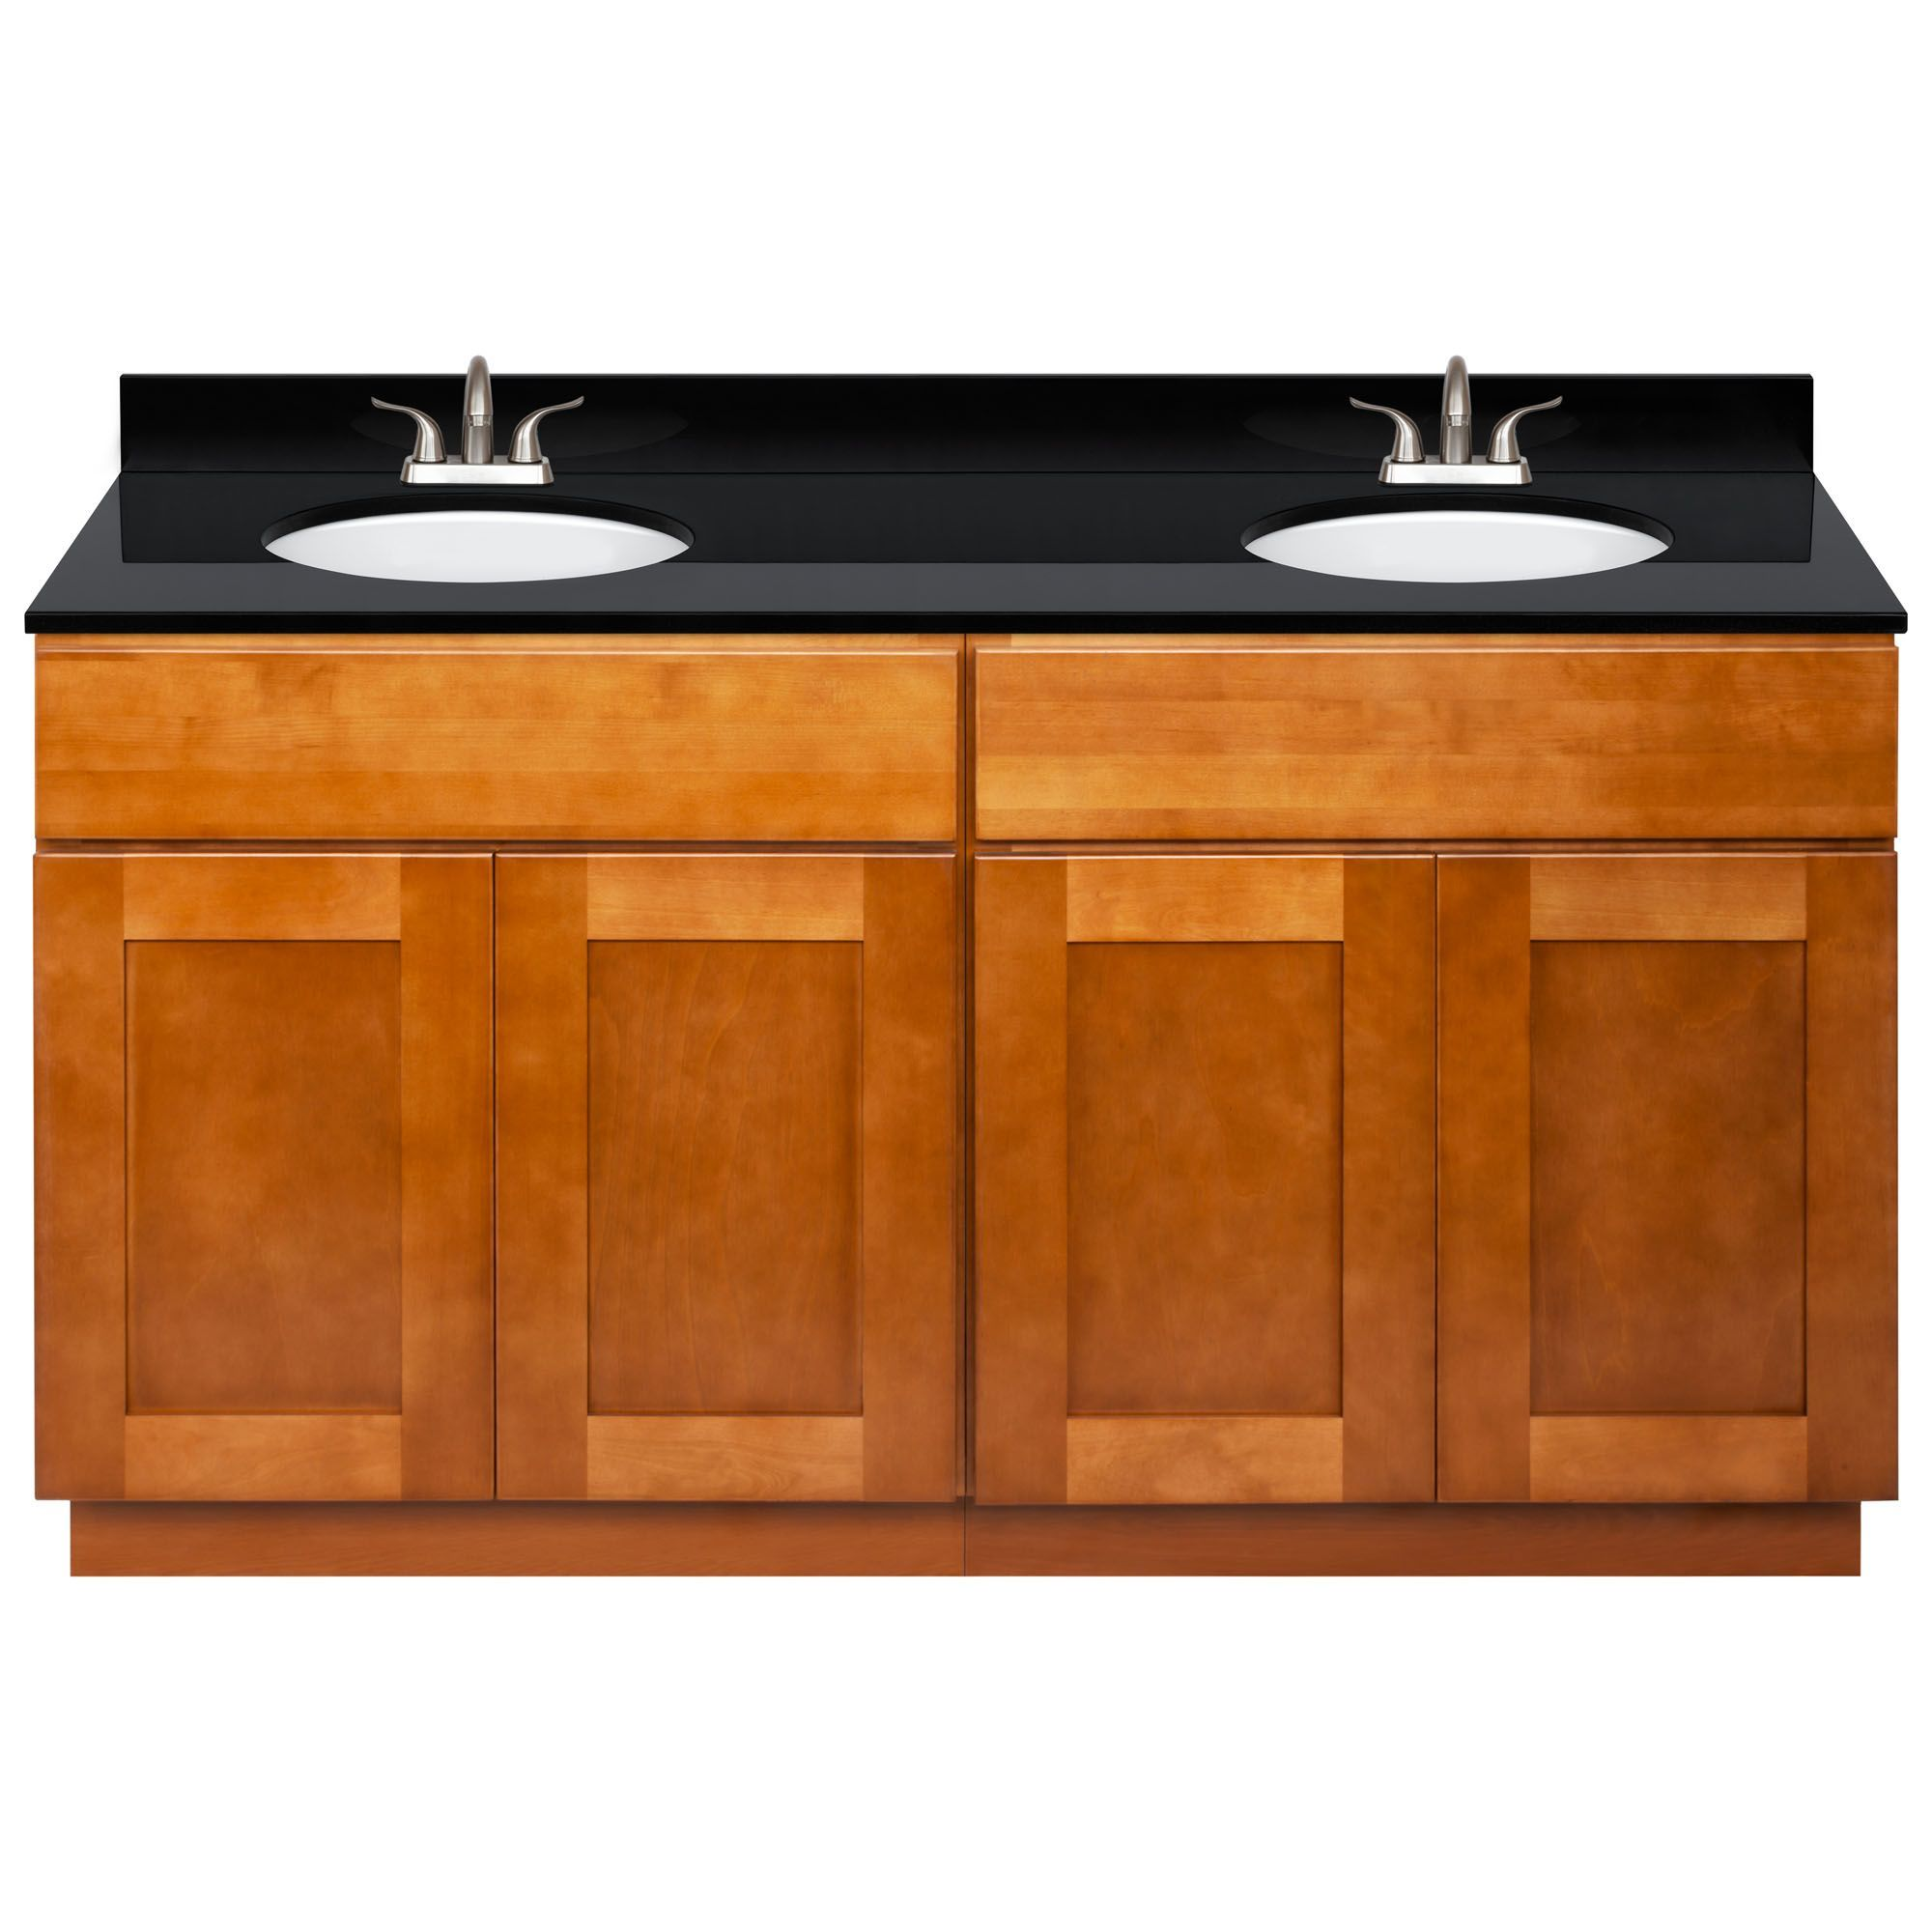 Lesscare Newport 61w Double Sink Vanity And Absolute Black Granite Top With 4 In Spread And Faucet